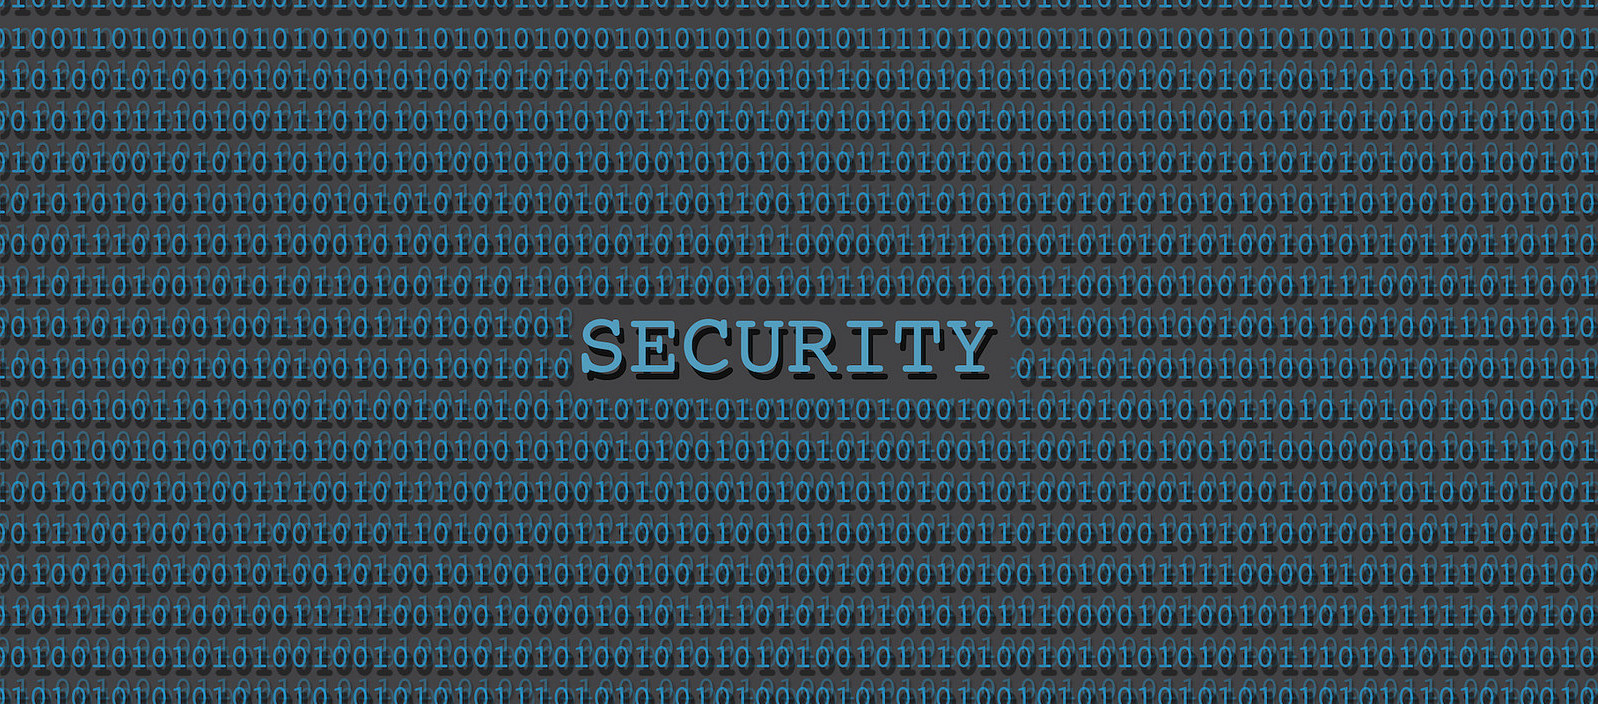 Security measures to look out for in a secure email service